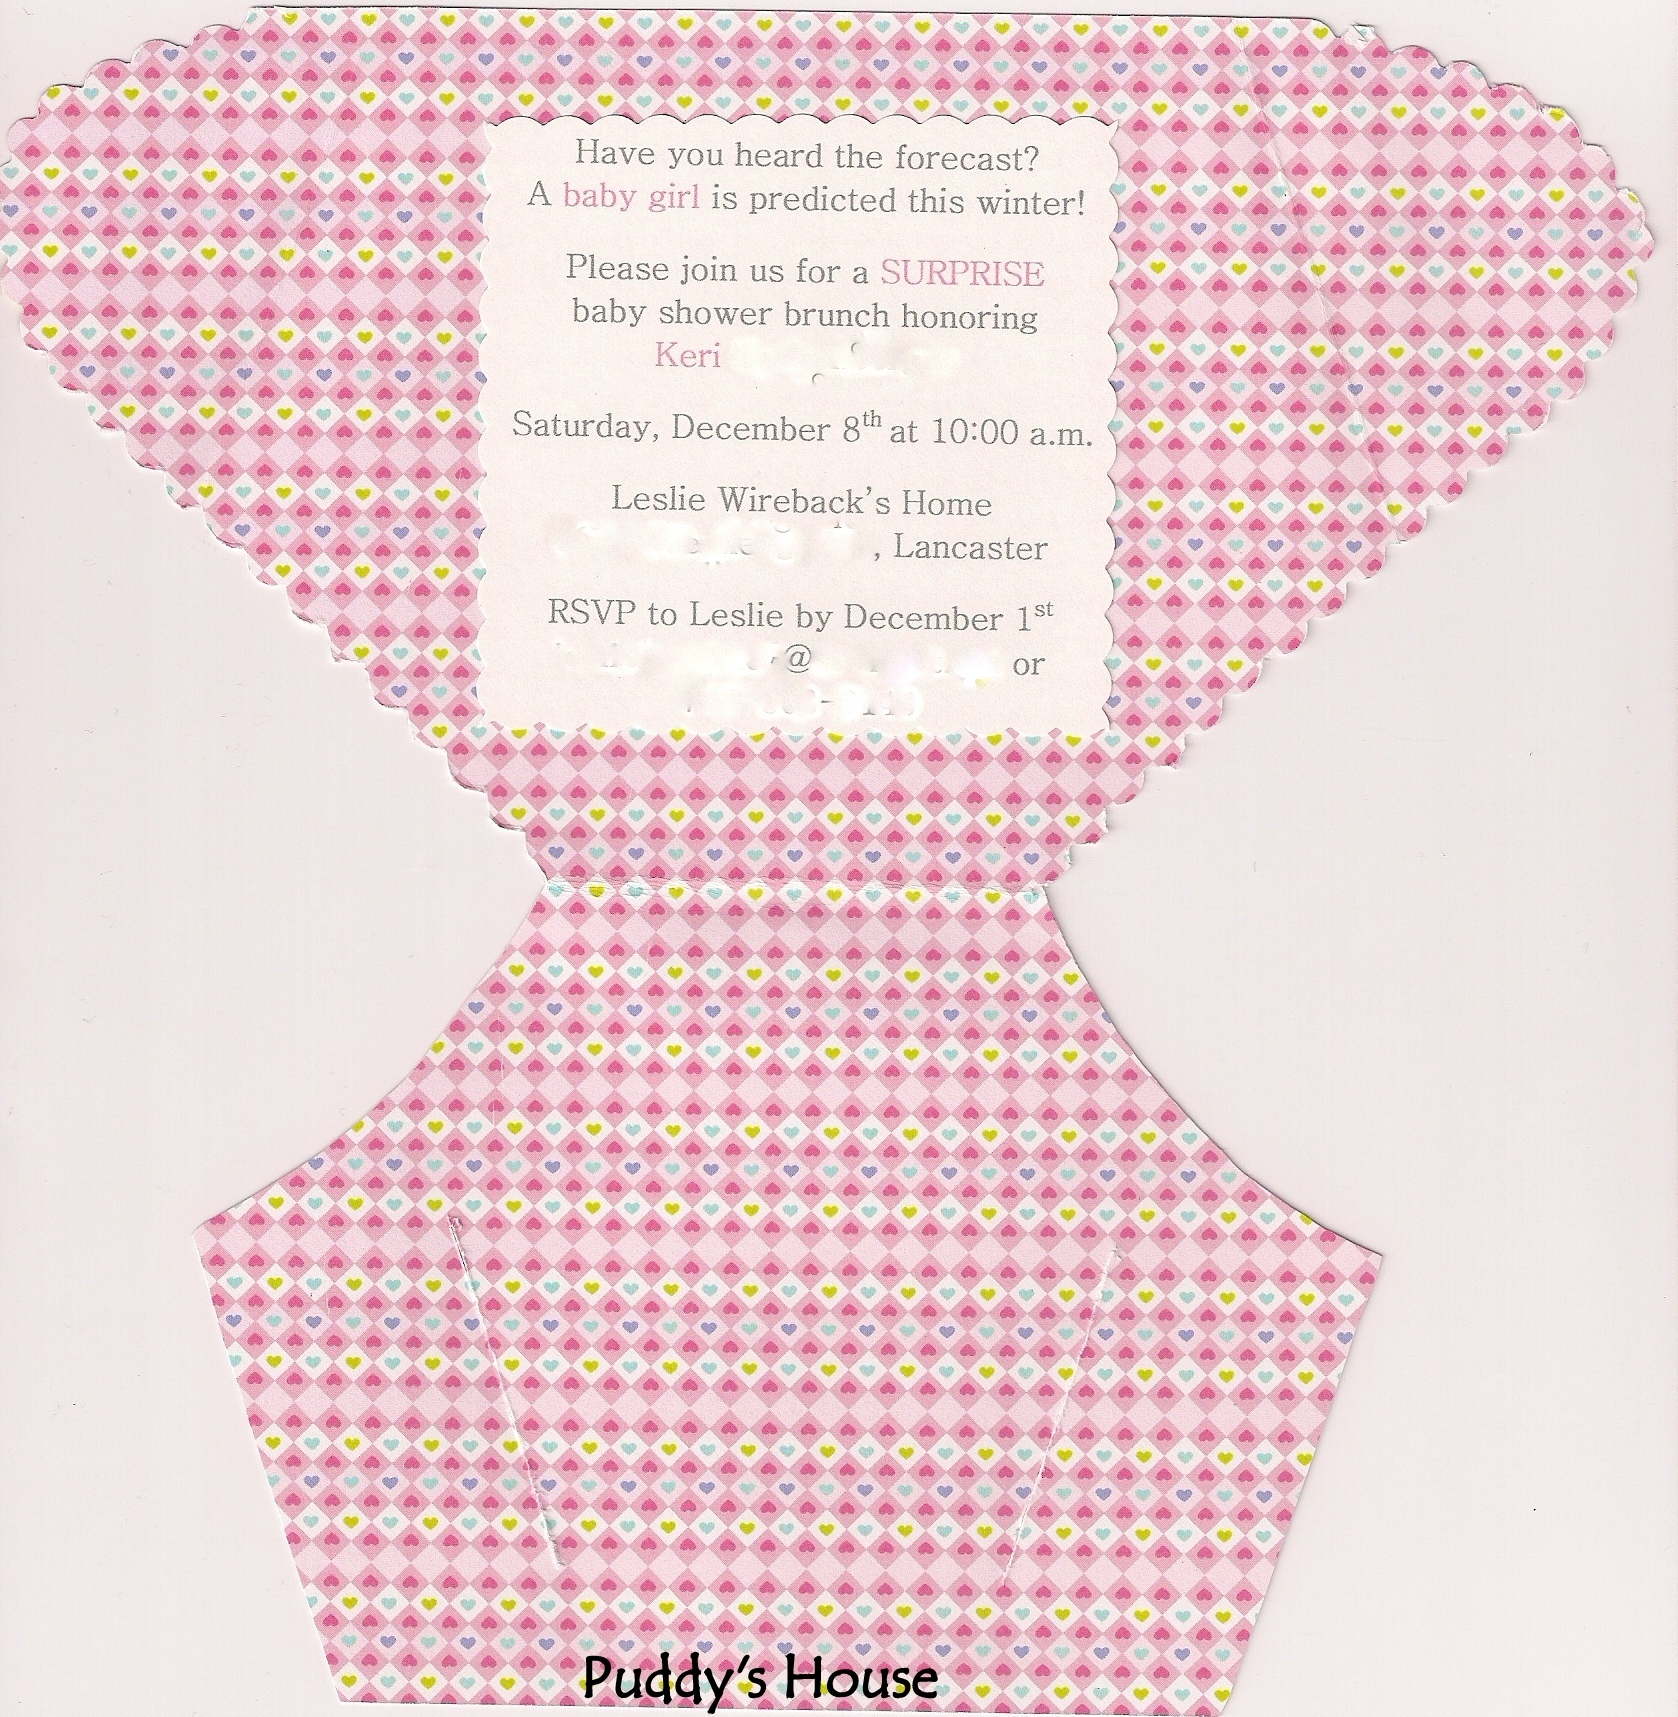 DIY Diaper Invitation Puddys House - Diaper baby shower invitation template